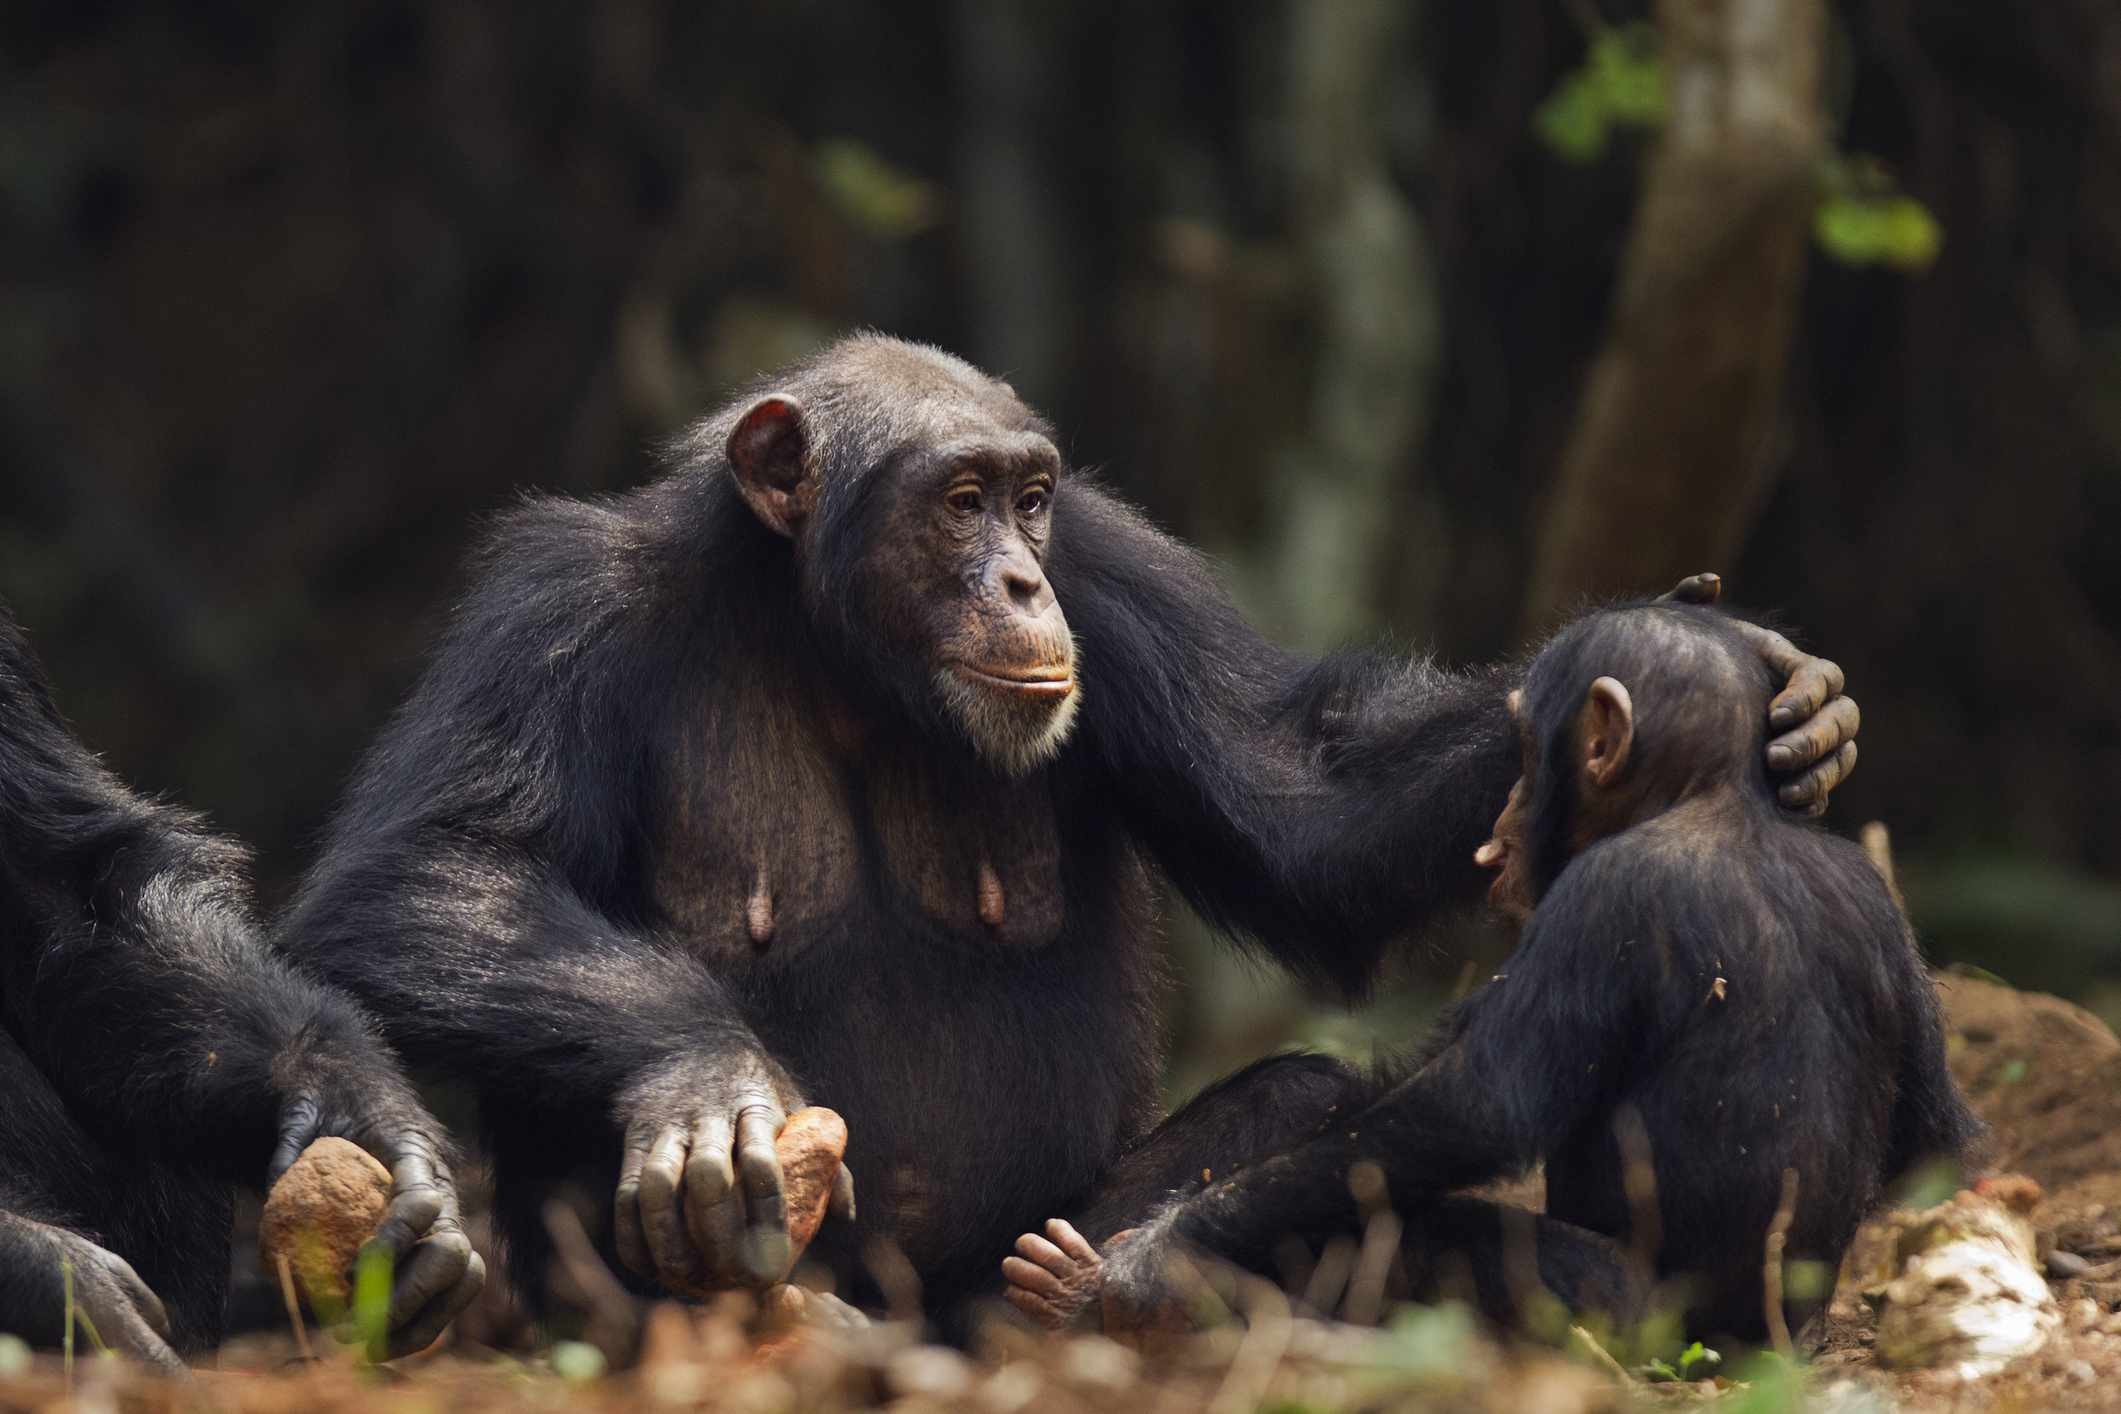 A chimpanzee mother comforting her baby by rubbing his head.